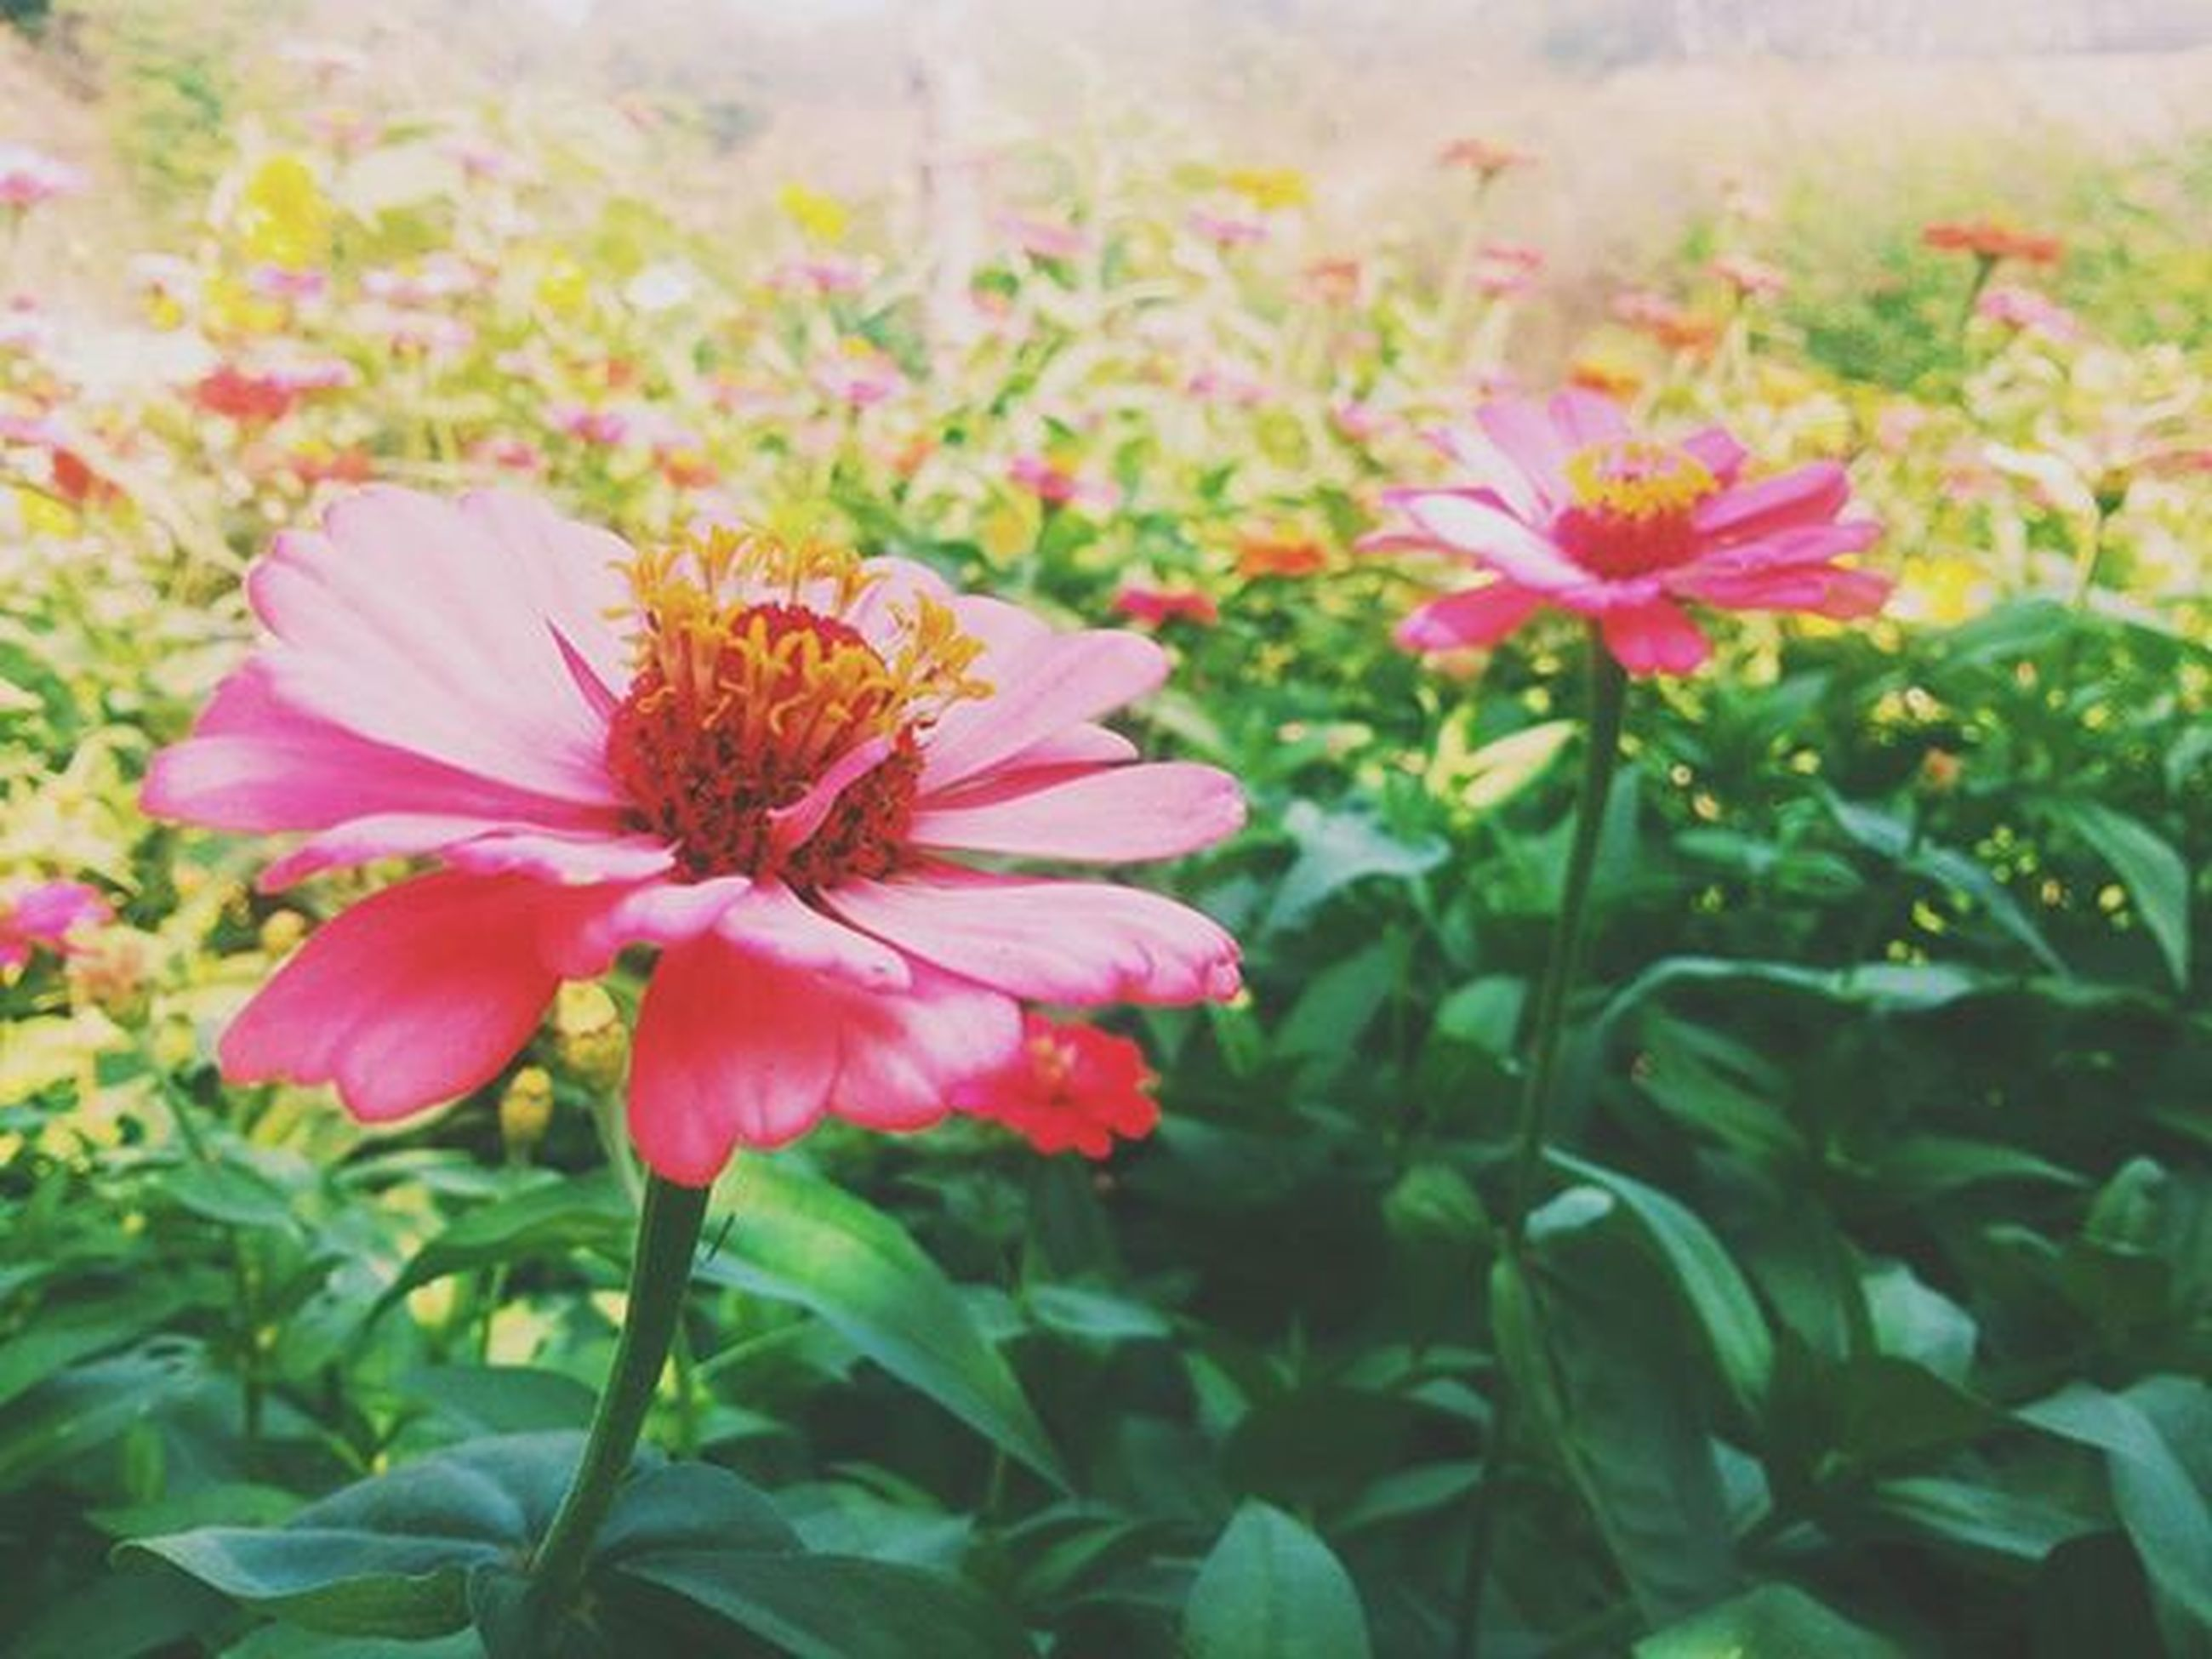 flower, freshness, petal, fragility, flower head, growth, beauty in nature, blooming, nature, plant, focus on foreground, pink color, close-up, in bloom, pollen, blossom, day, park - man made space, outdoors, red